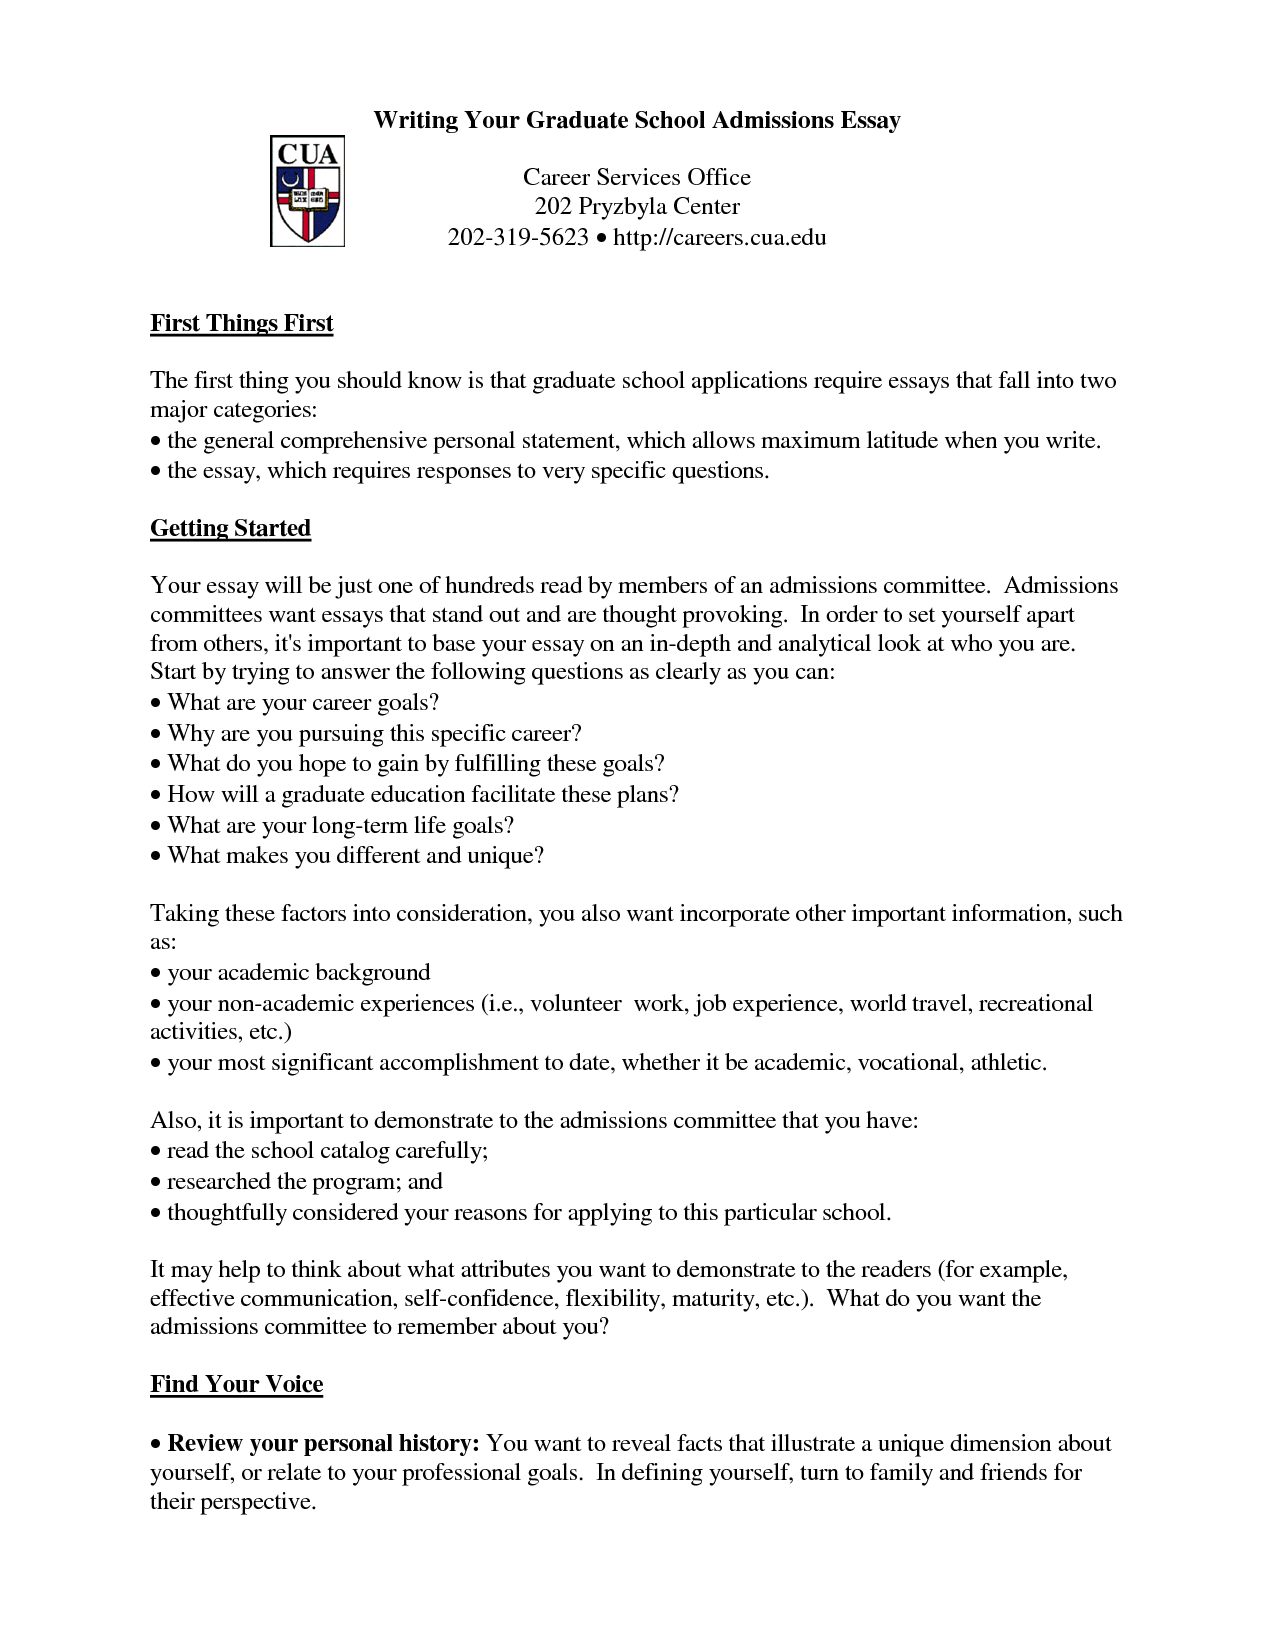 Graduate school essay format gecce tackletarts co